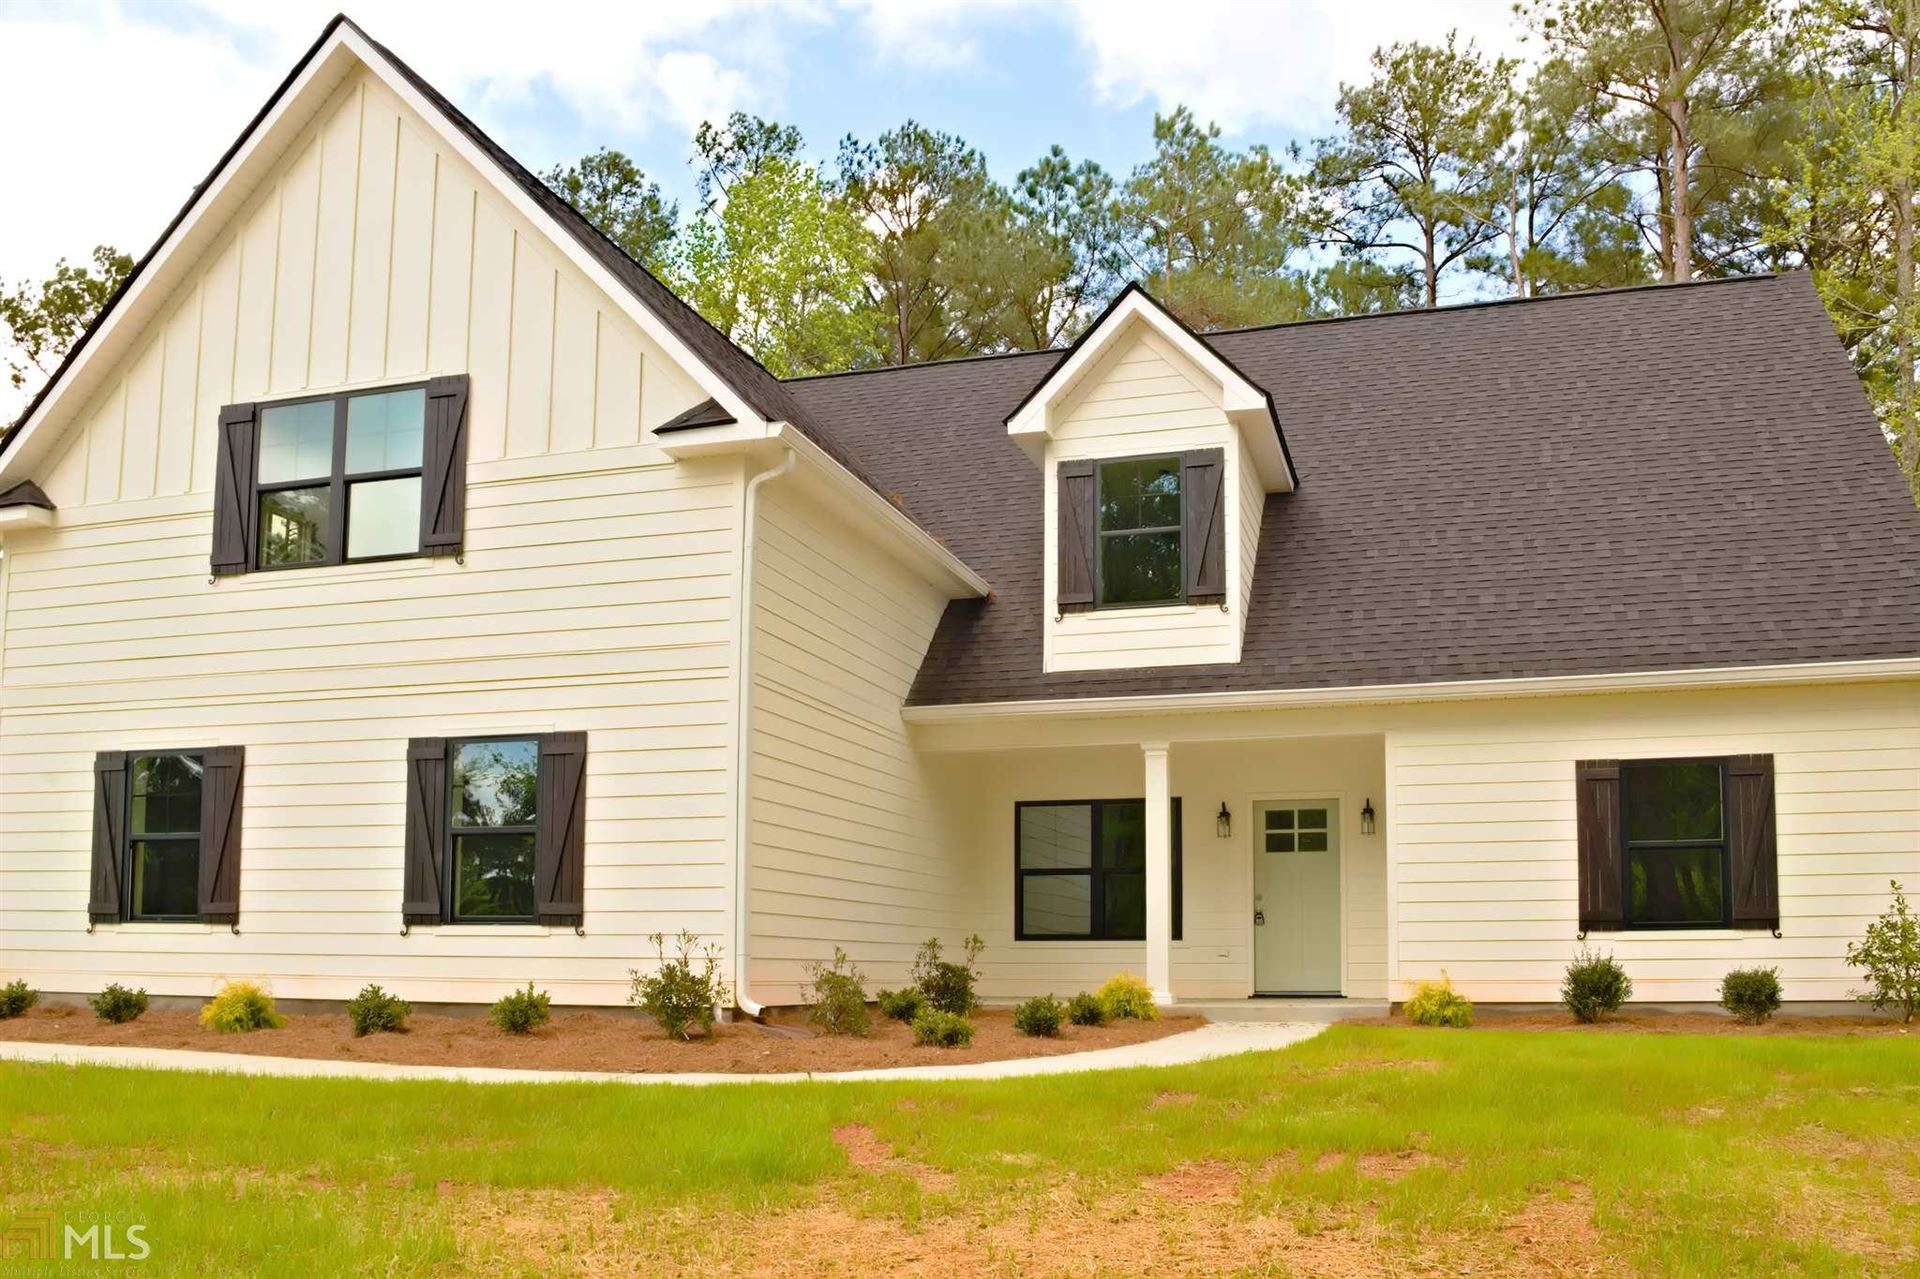 682 Riverside Estates, Lanett, AL 36863 - #: 8646387